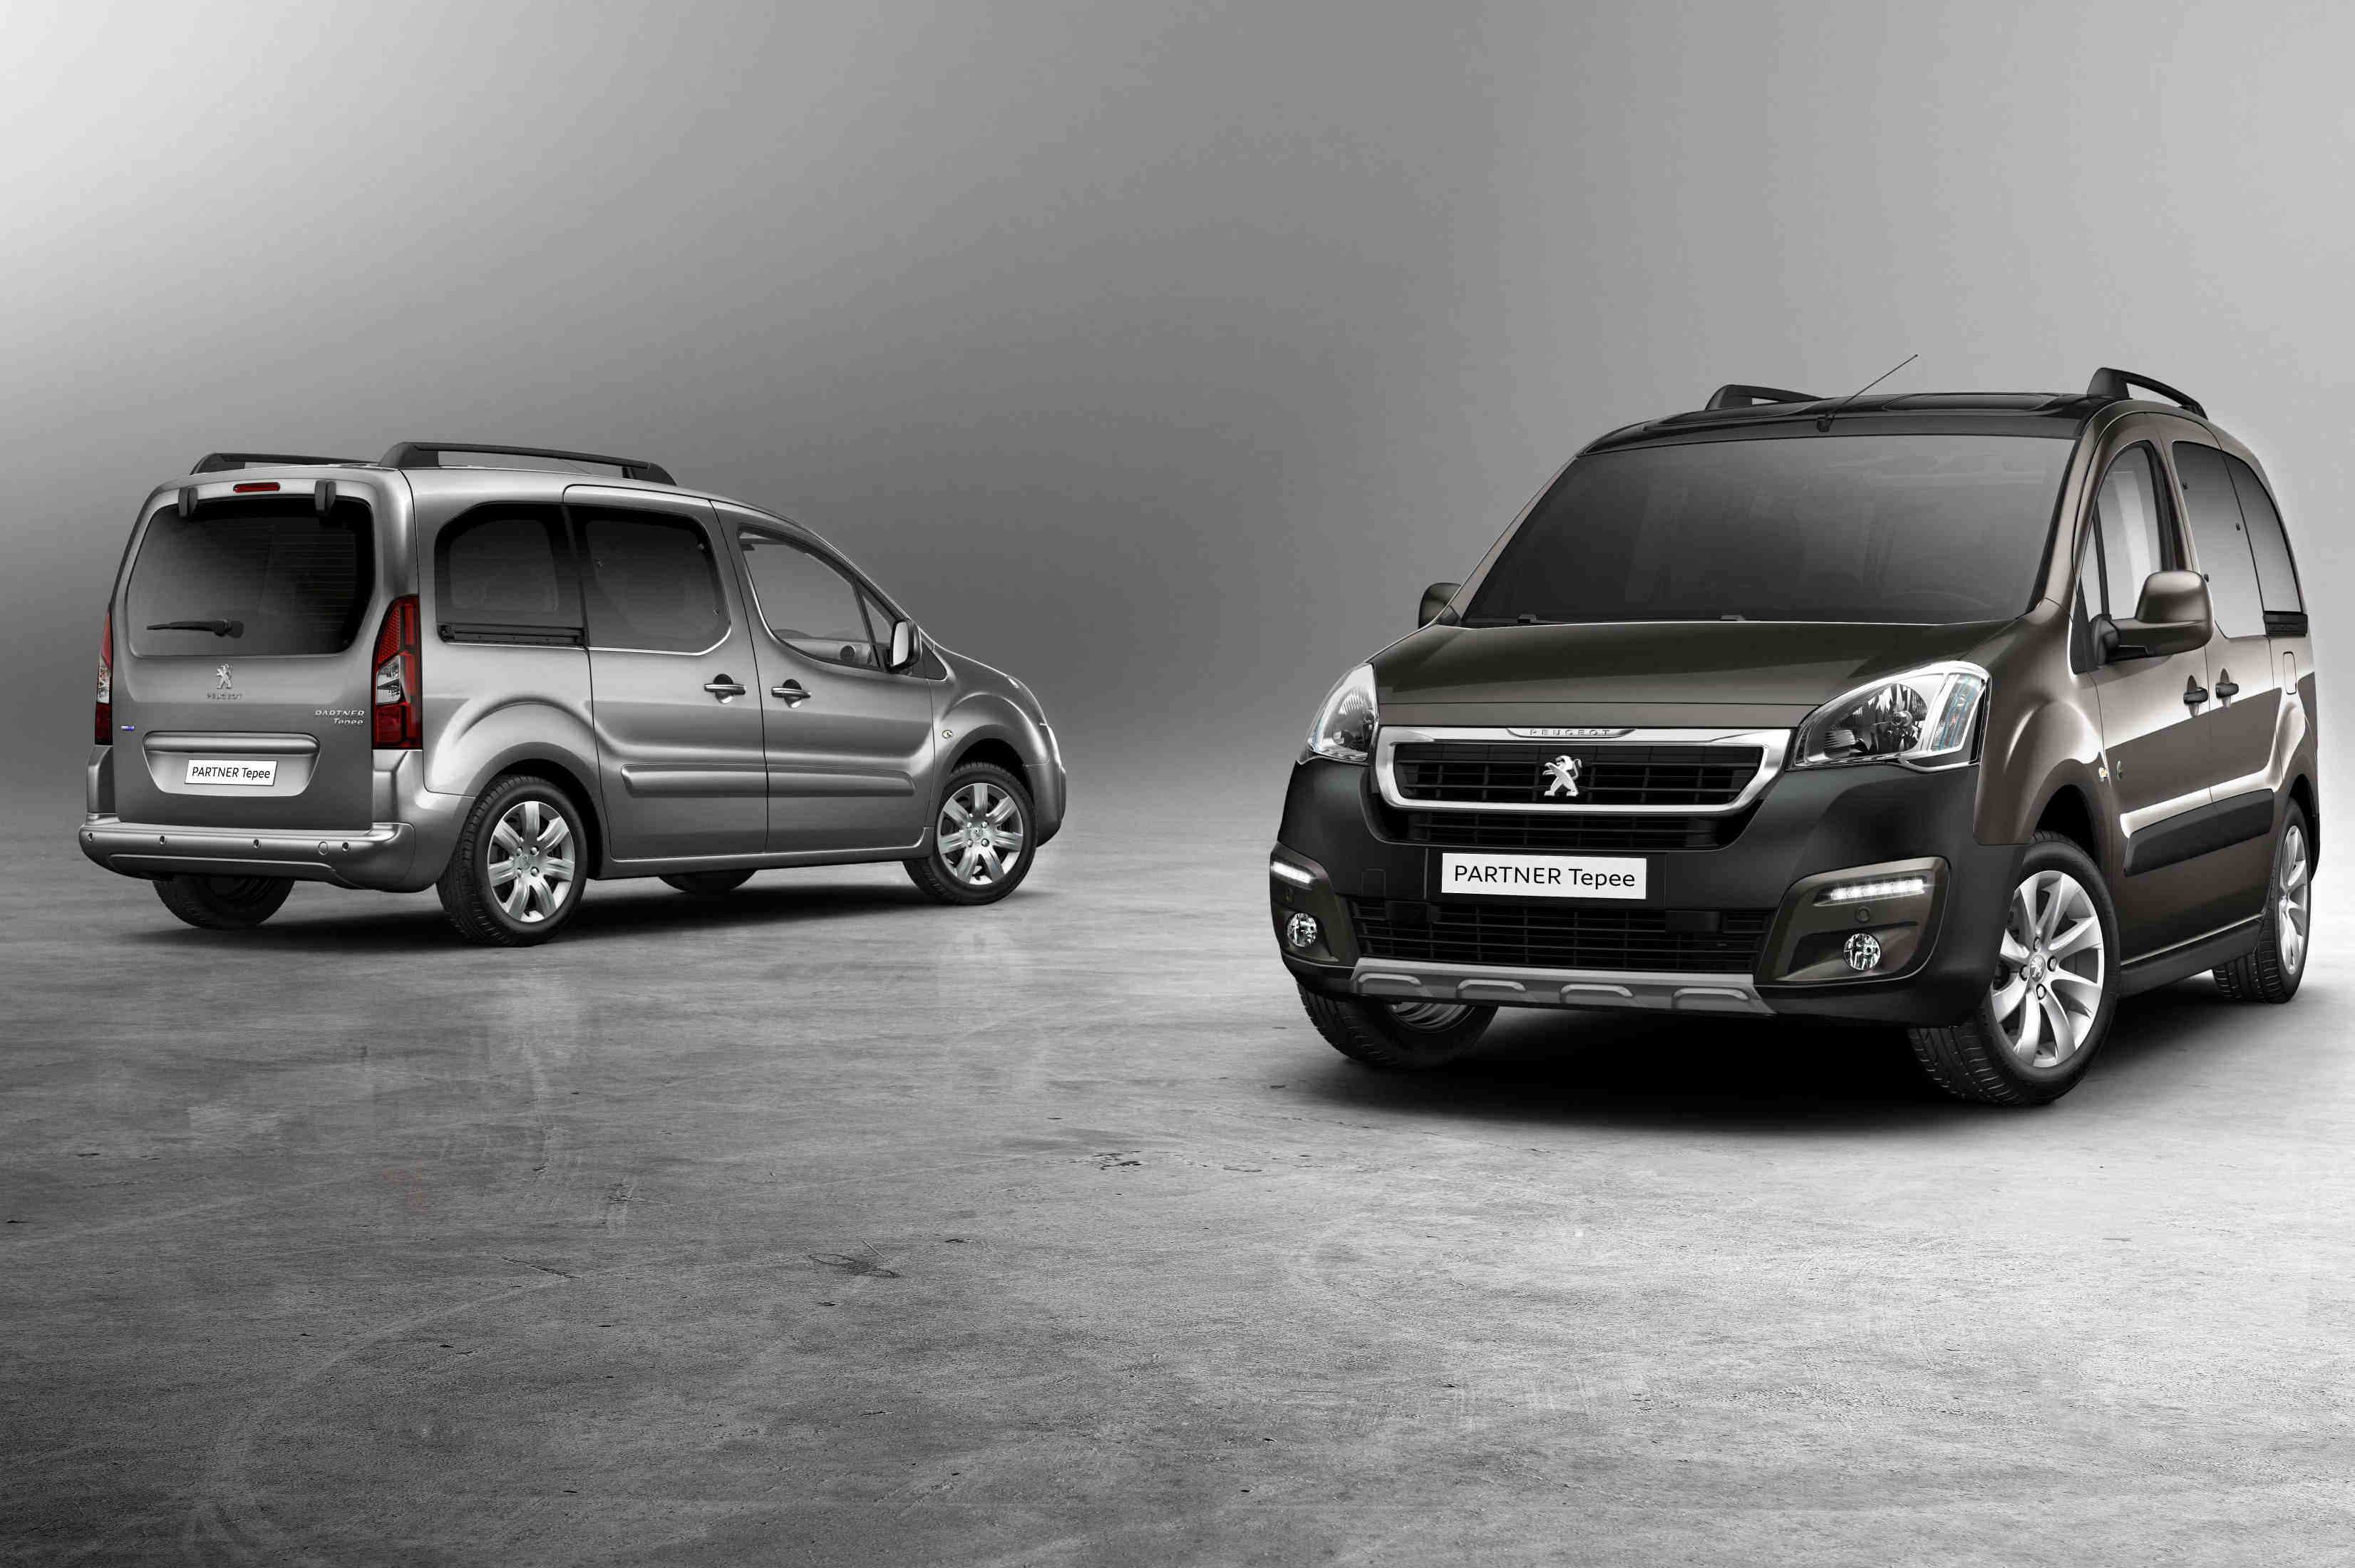 Peugeot Partner Tepee is the best compact family car with sliding doors